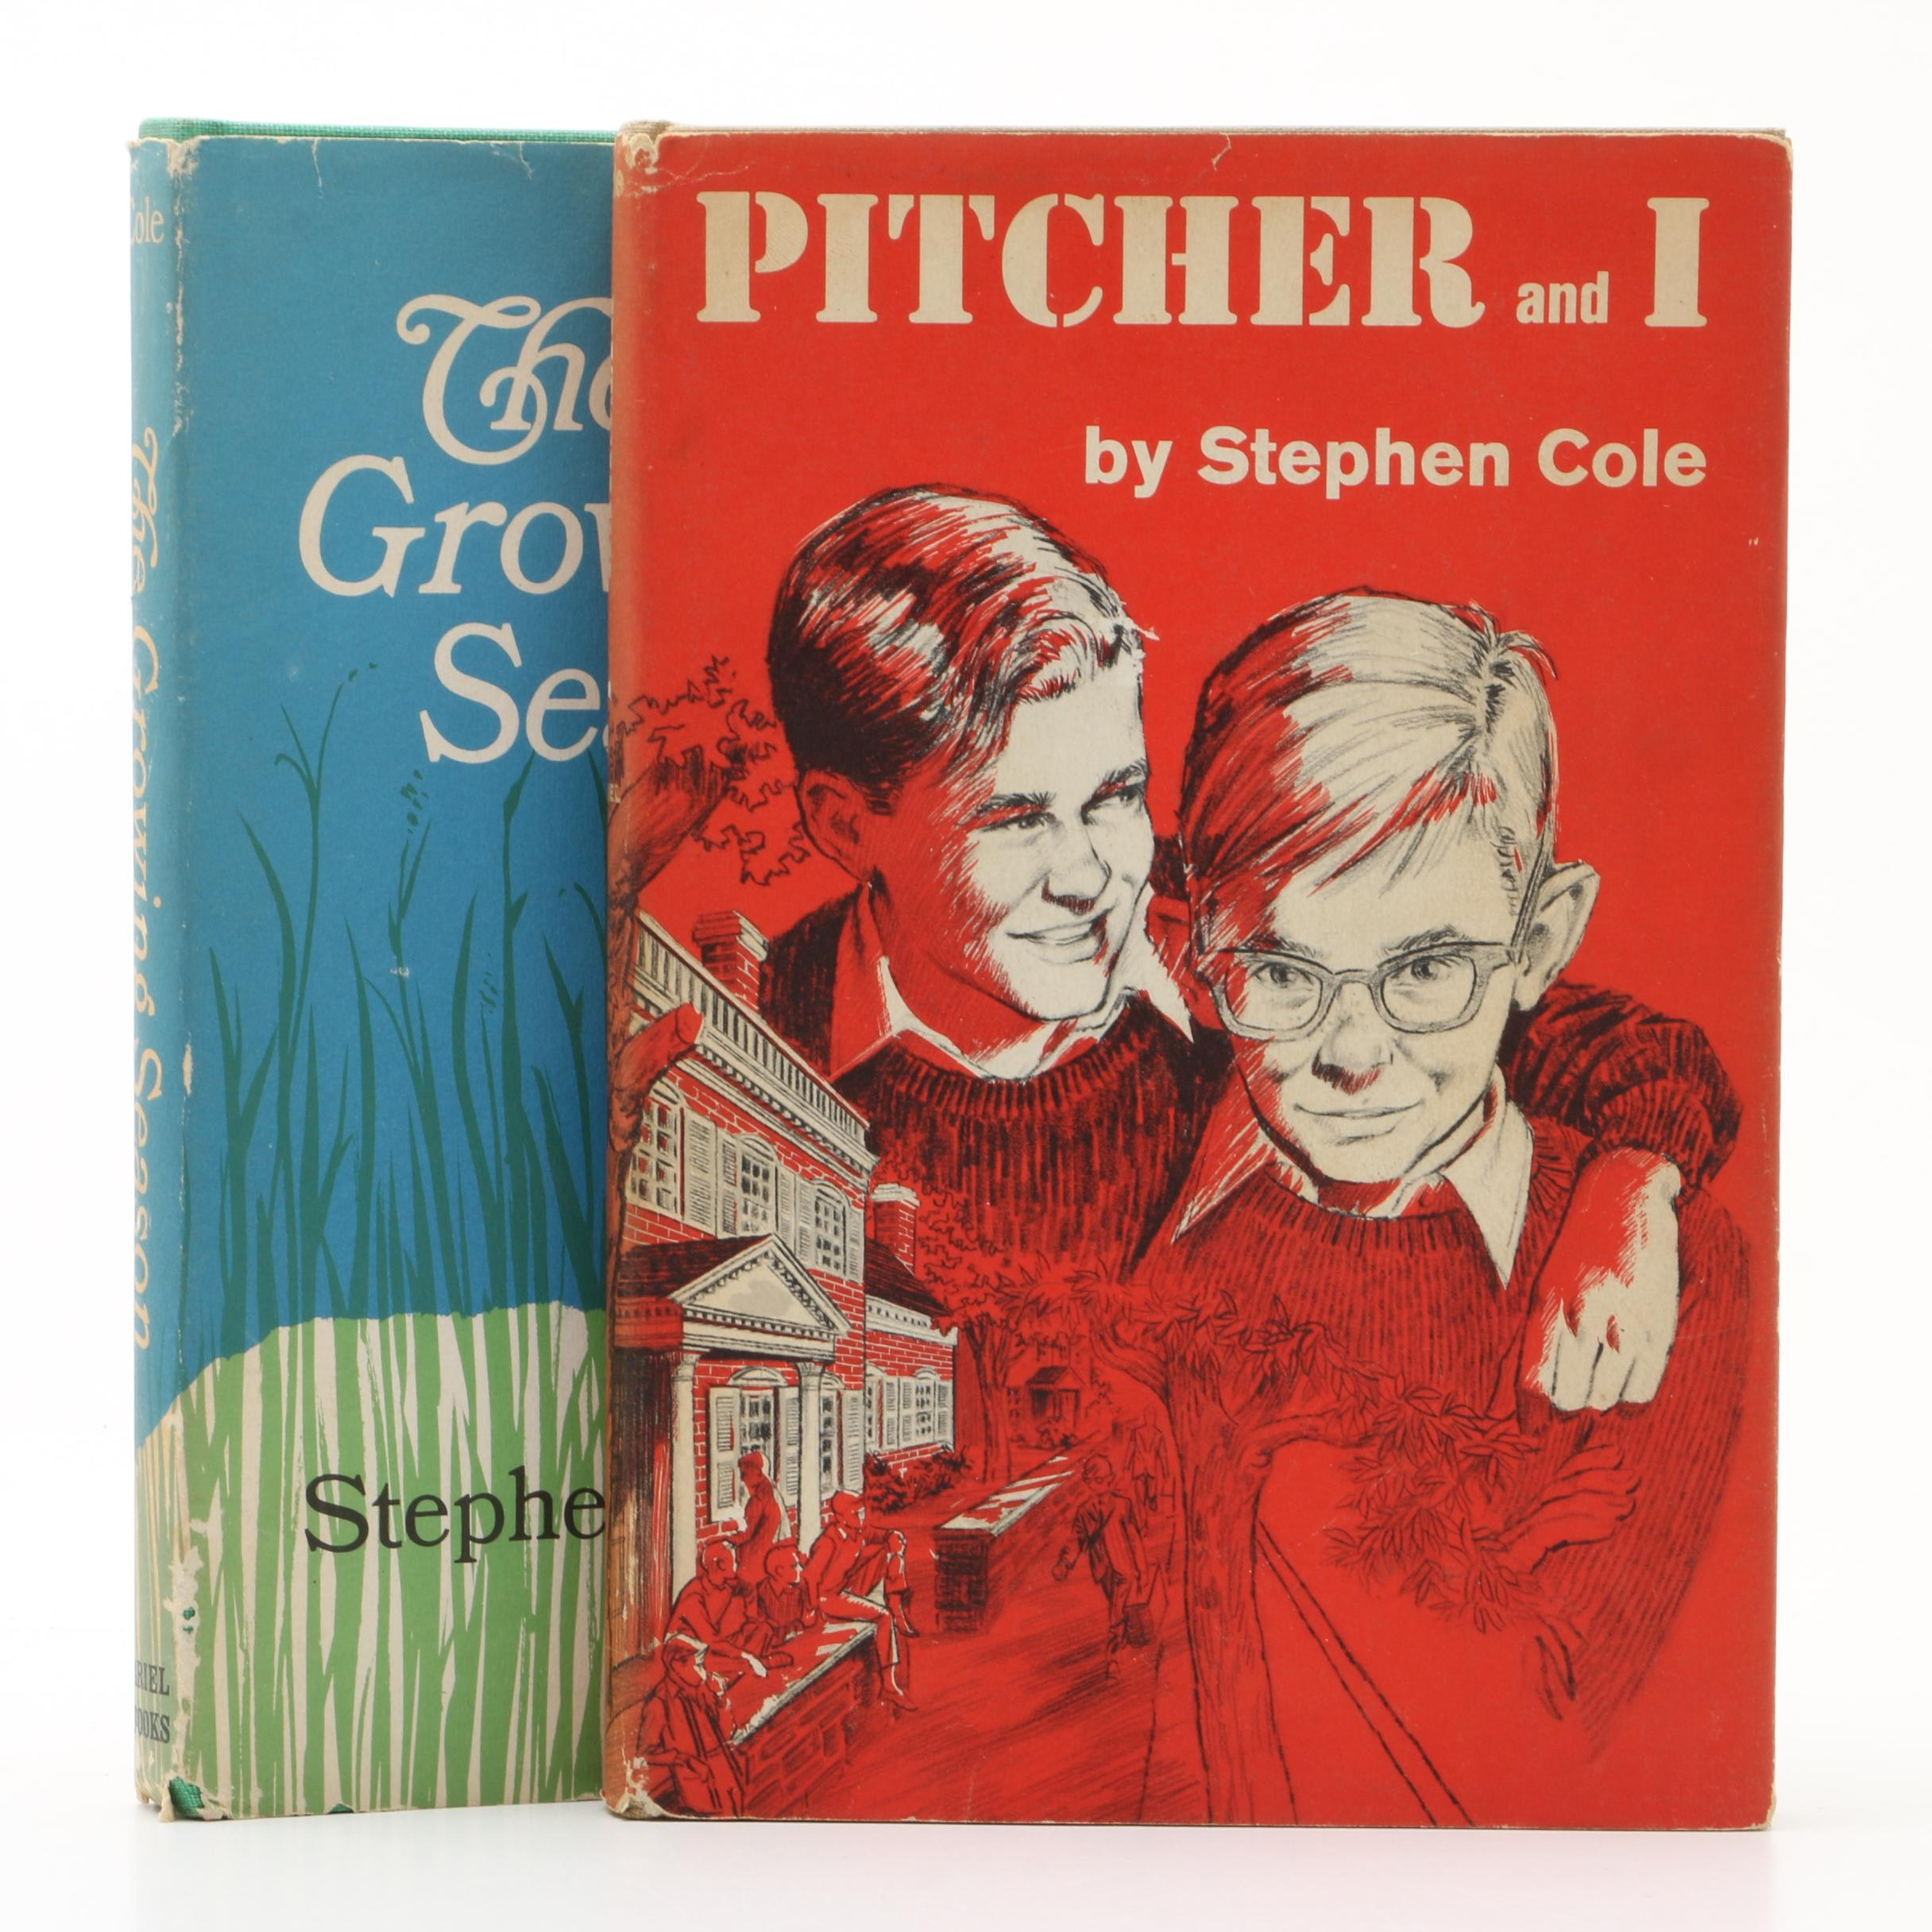 Two Signed First Printings by Stephen Cole